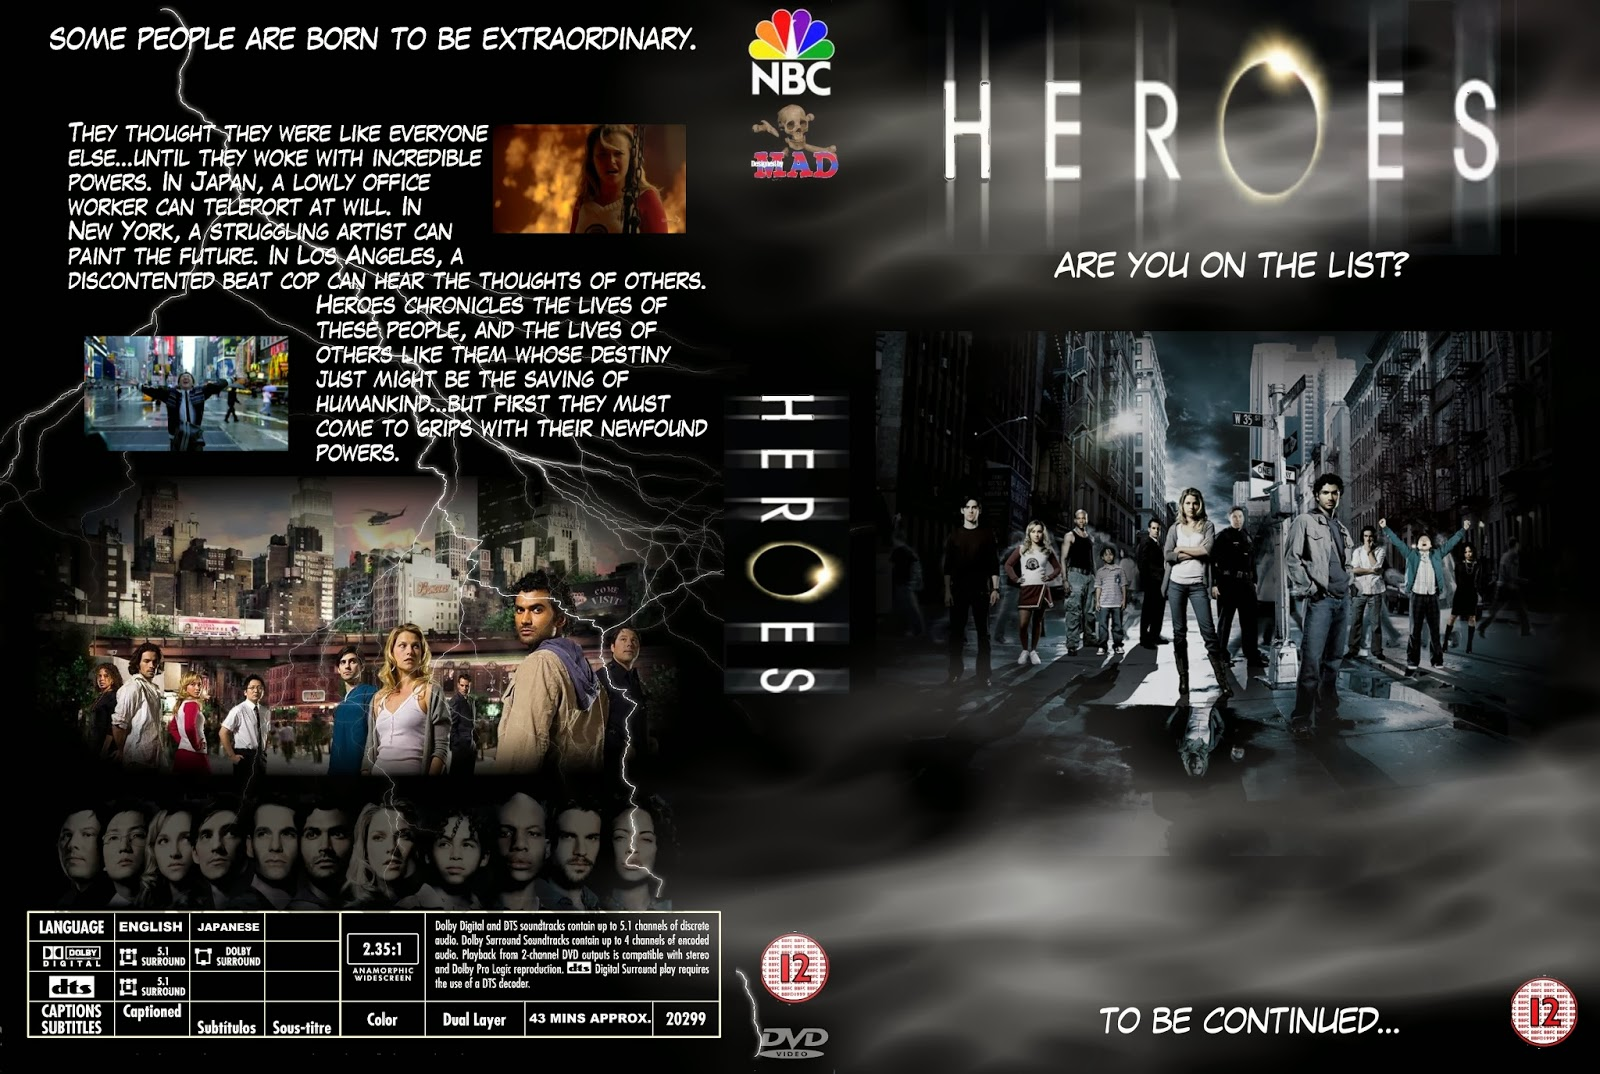 Help with a essay on heroes (tv show)?